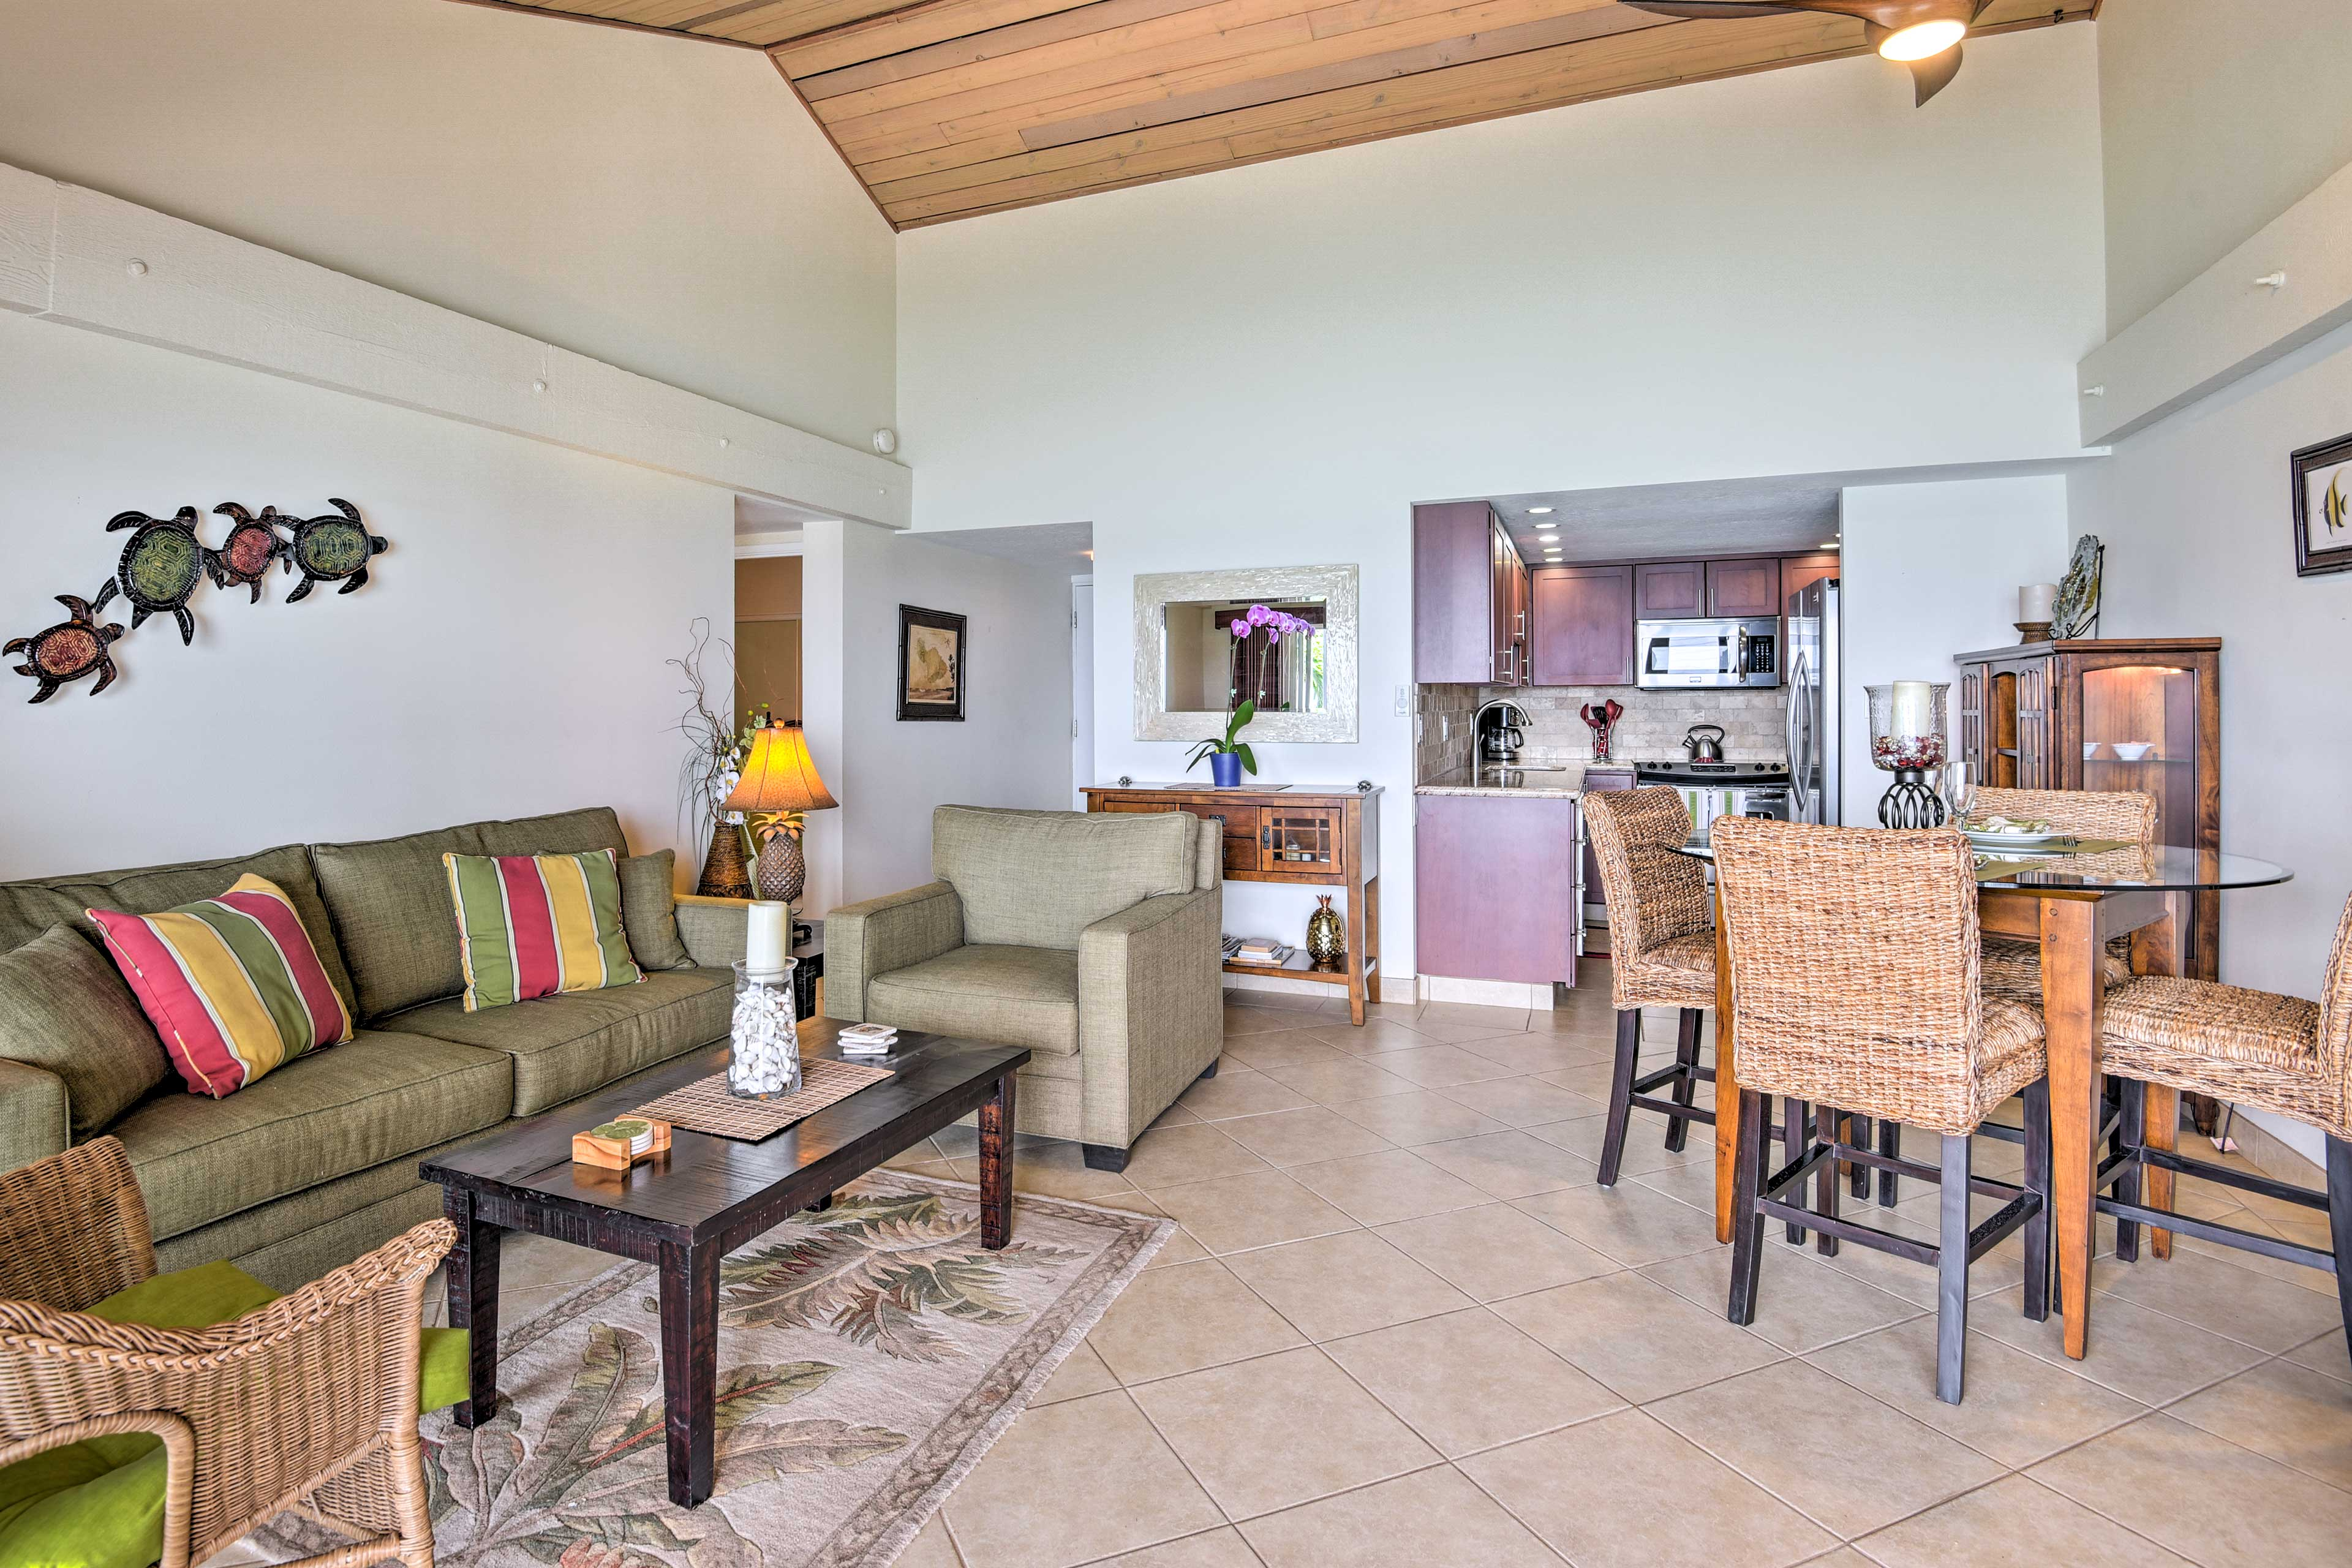 You'll feel right at home in this elegant, tastefully decorated beachside condo.